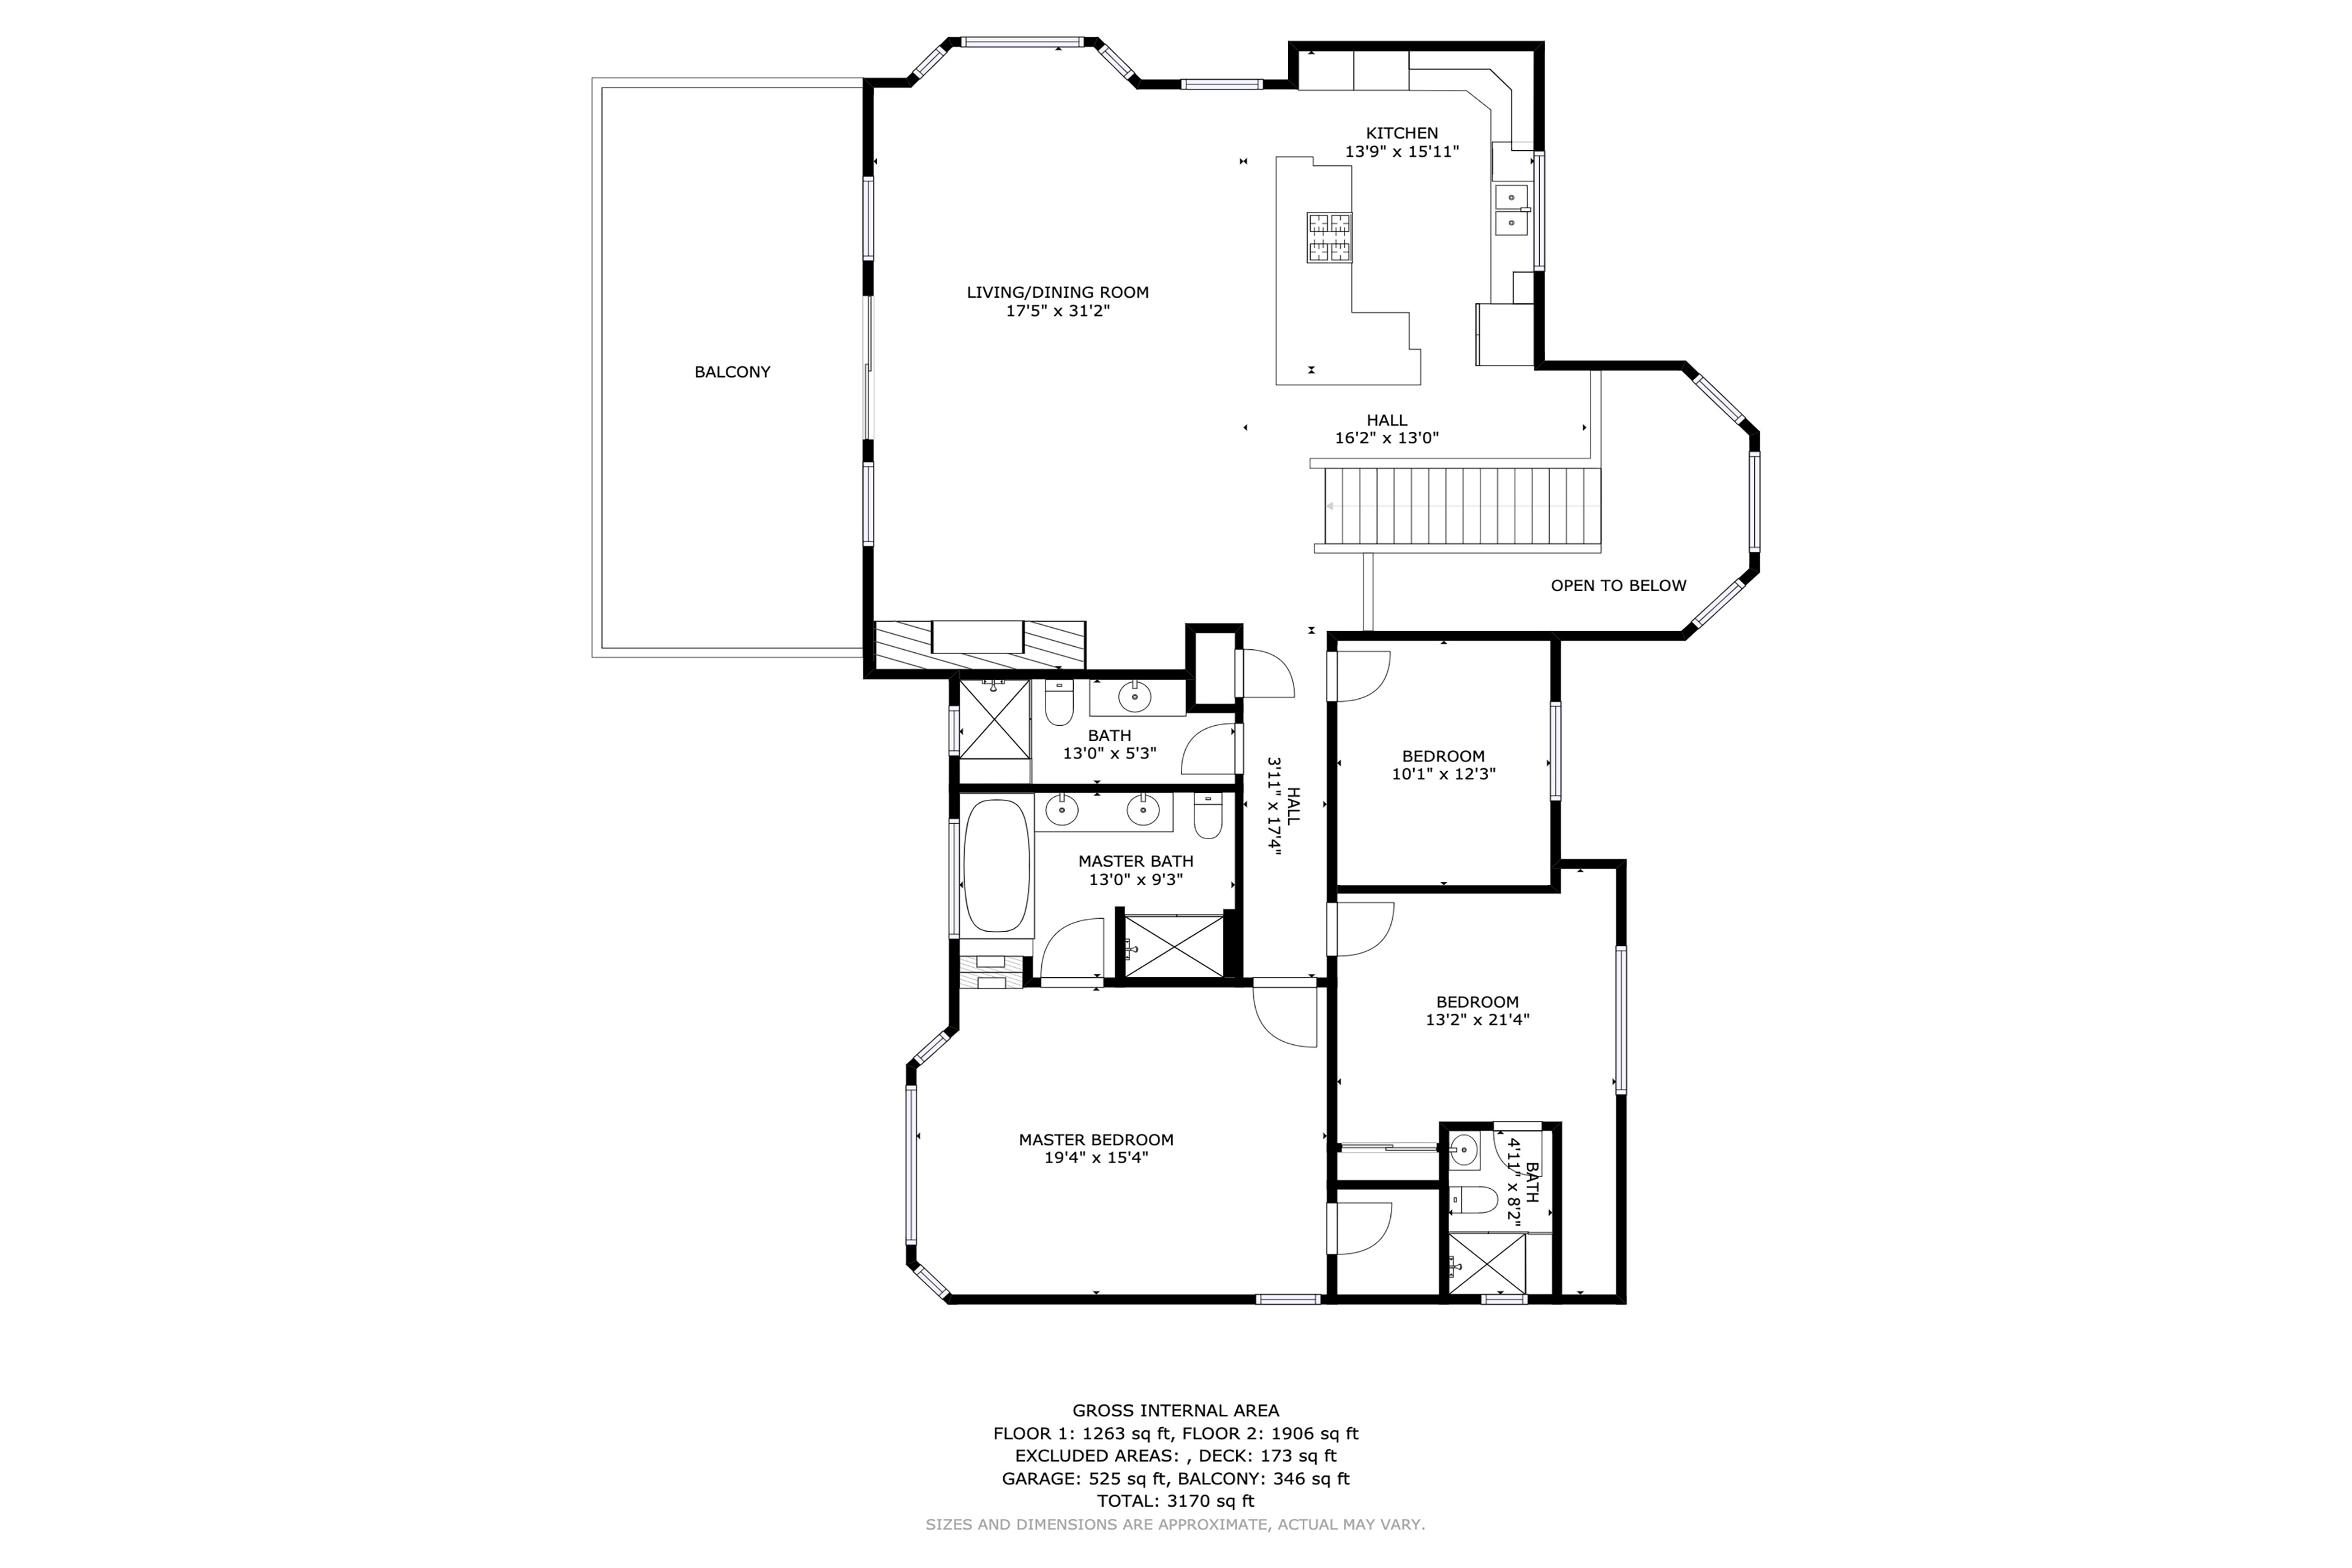 Single Family Homes for Active at Turnkey Home 639 Tehama Drive South Lake Tahoe, California 96150 United States